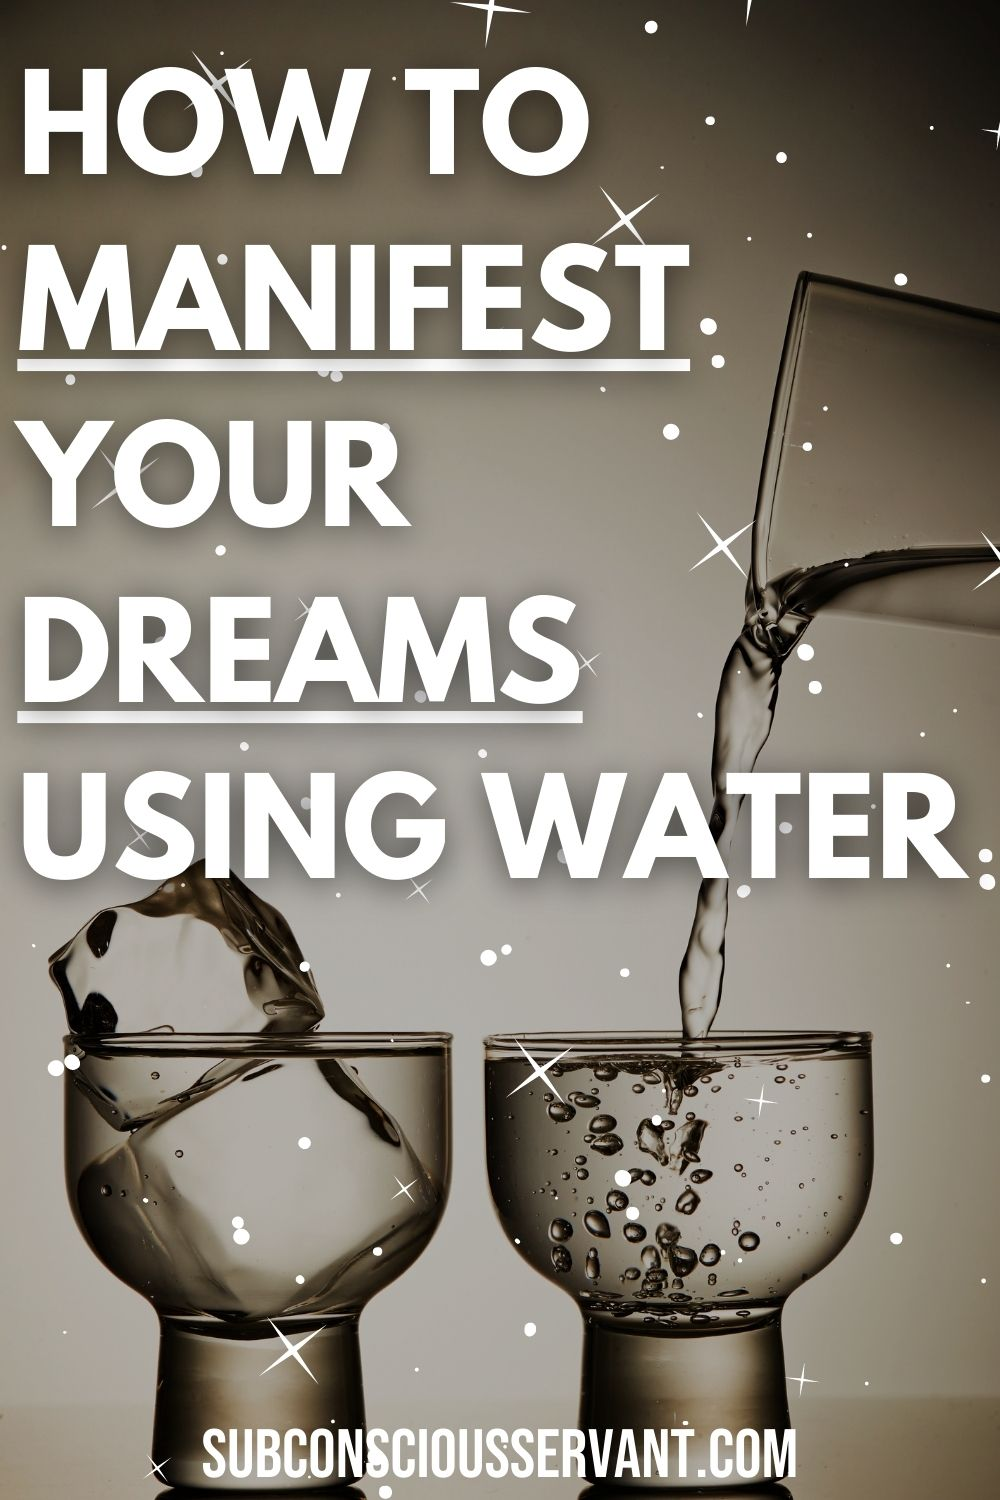 How To Manifest With Water - 3 Proven Techniques!